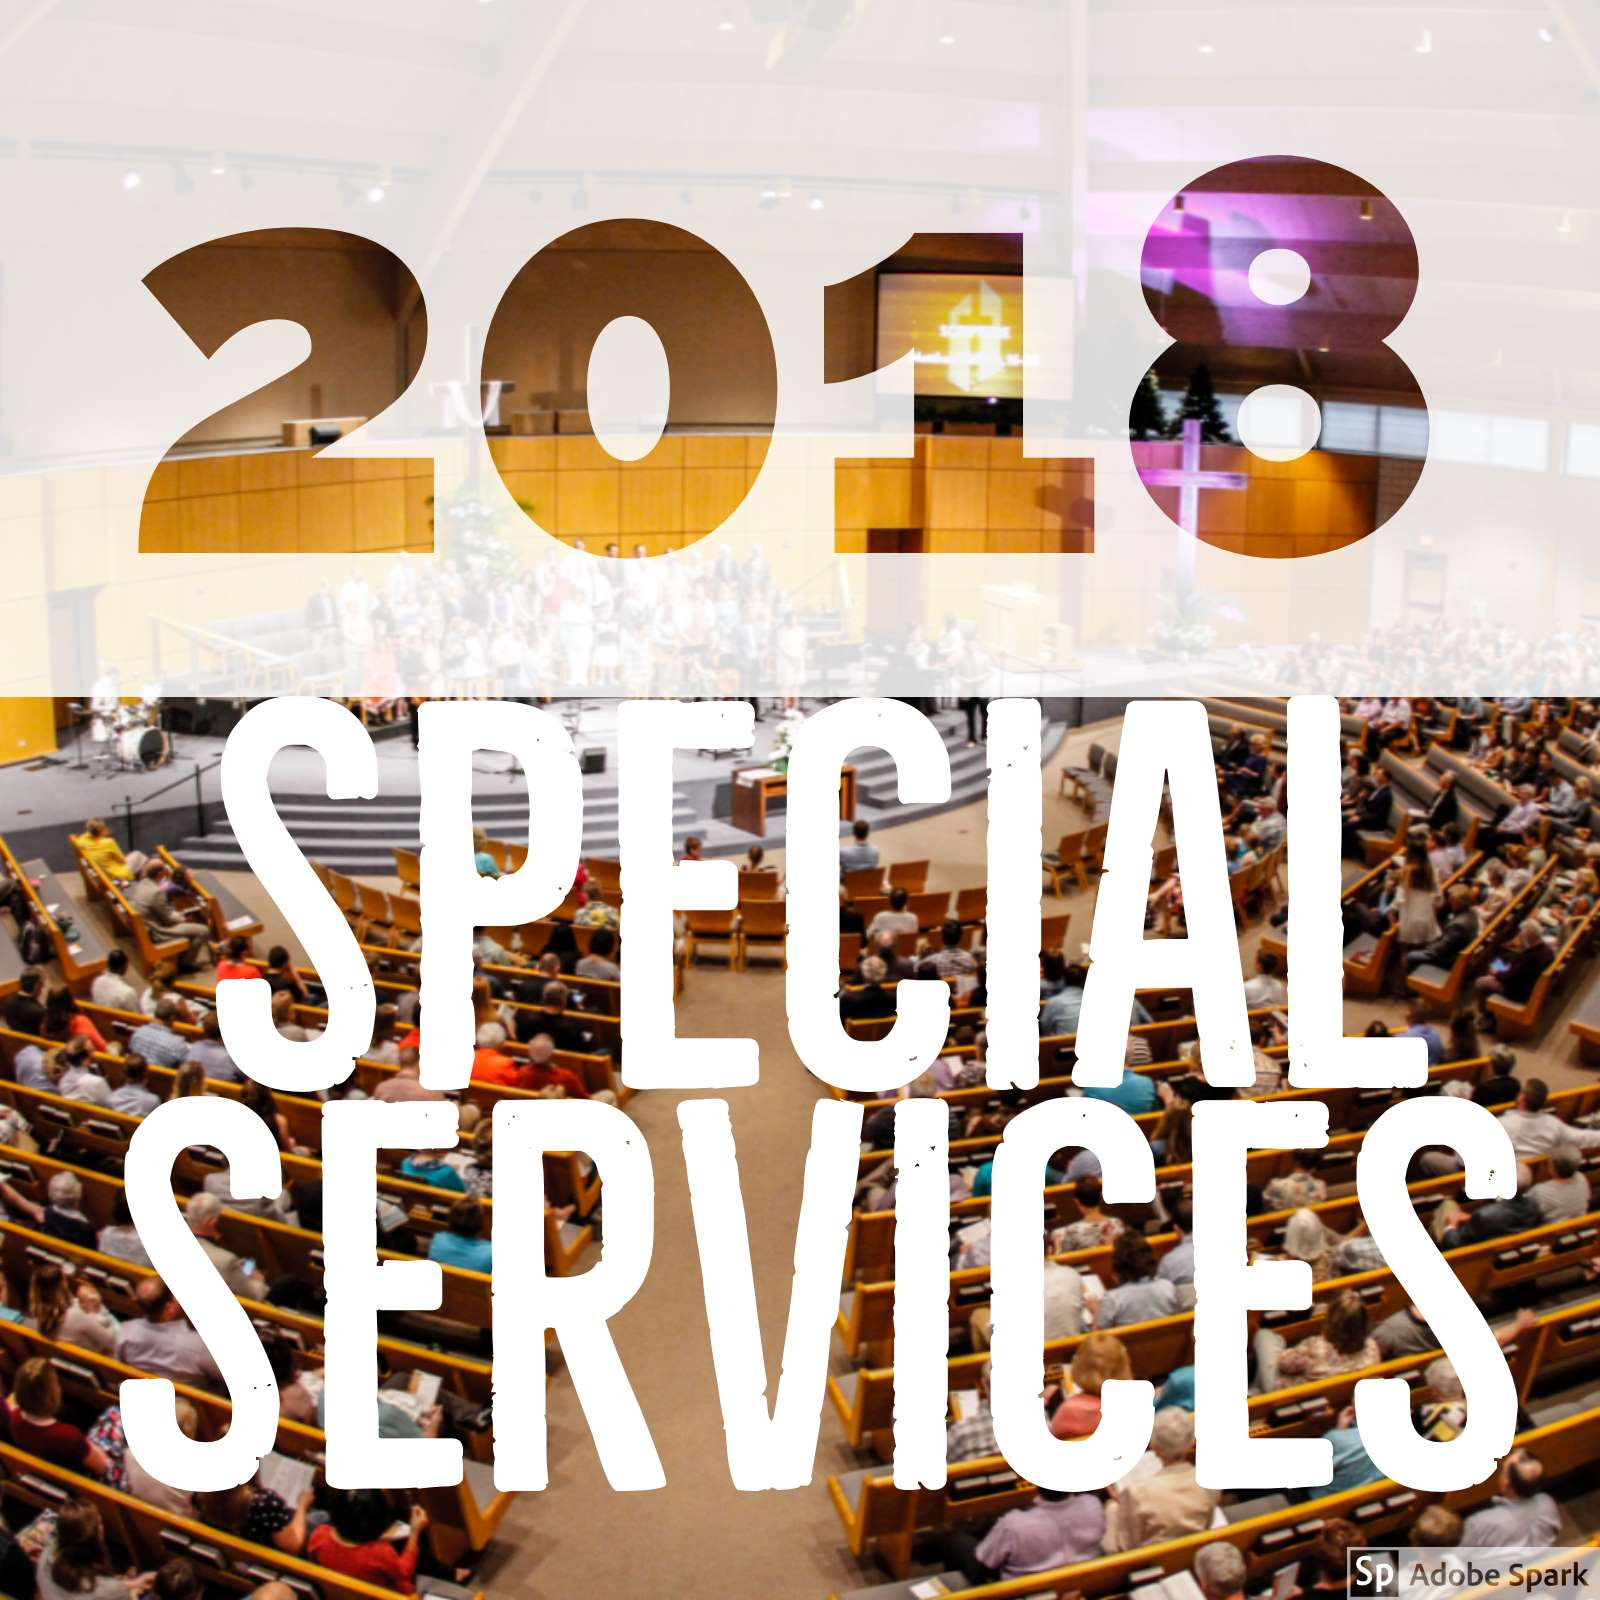 2018 Special Services.jpg